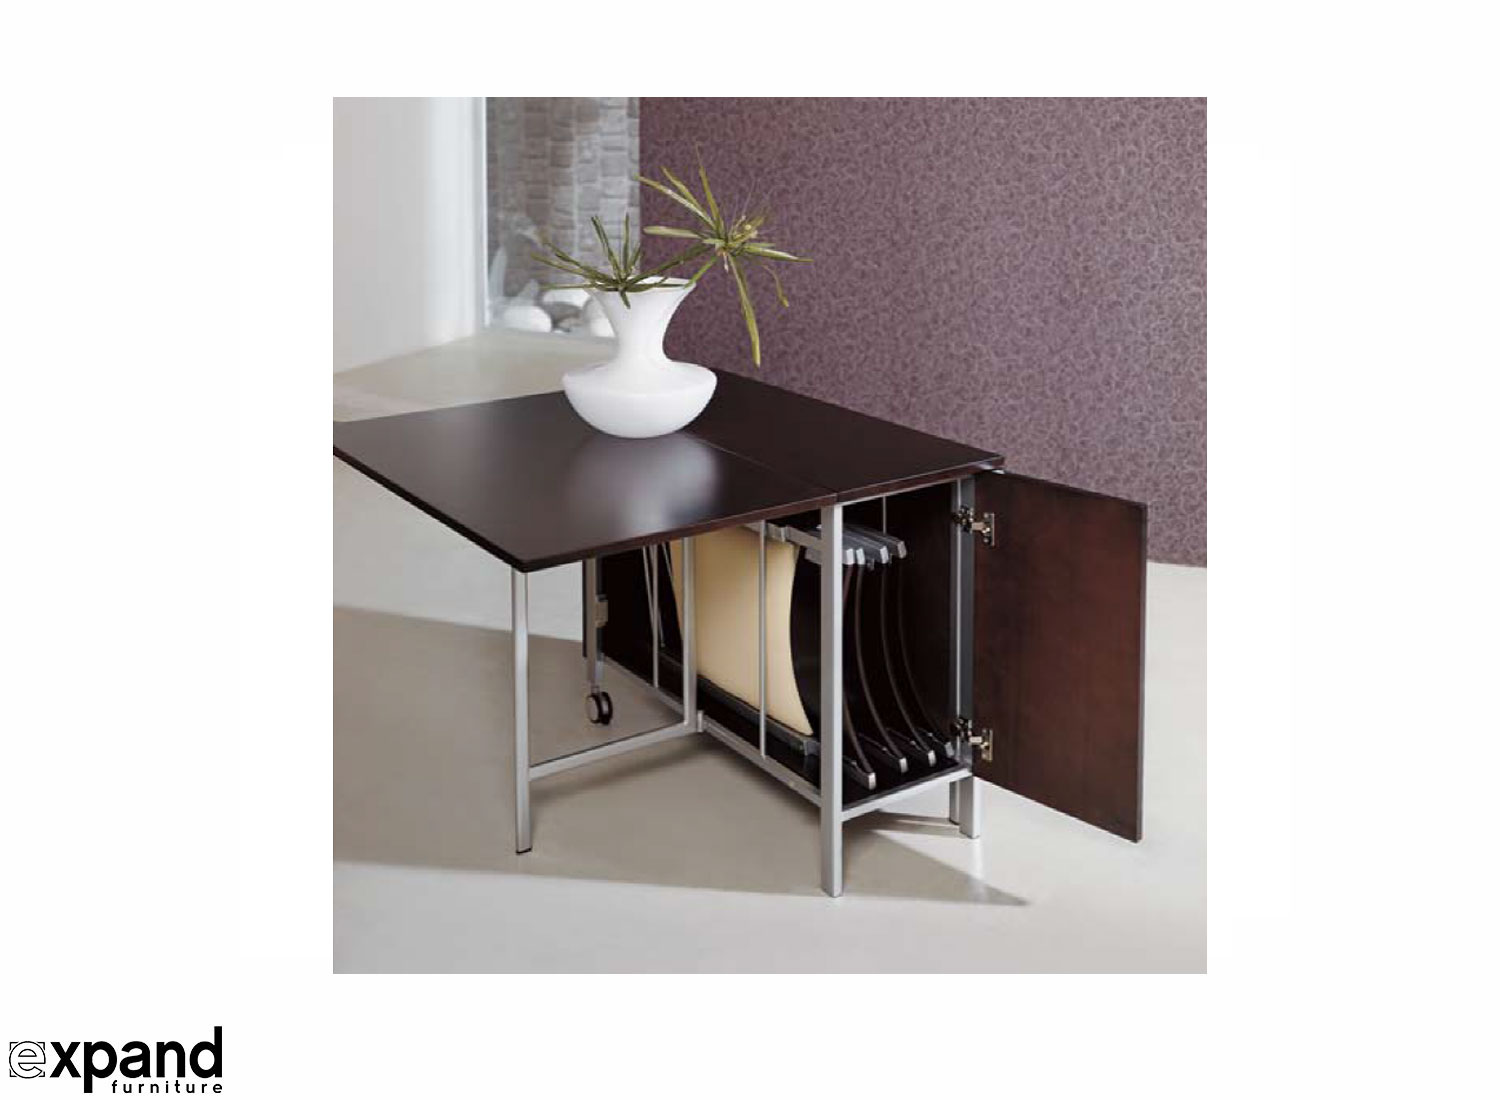 Trojan Console Table Expand Furniture